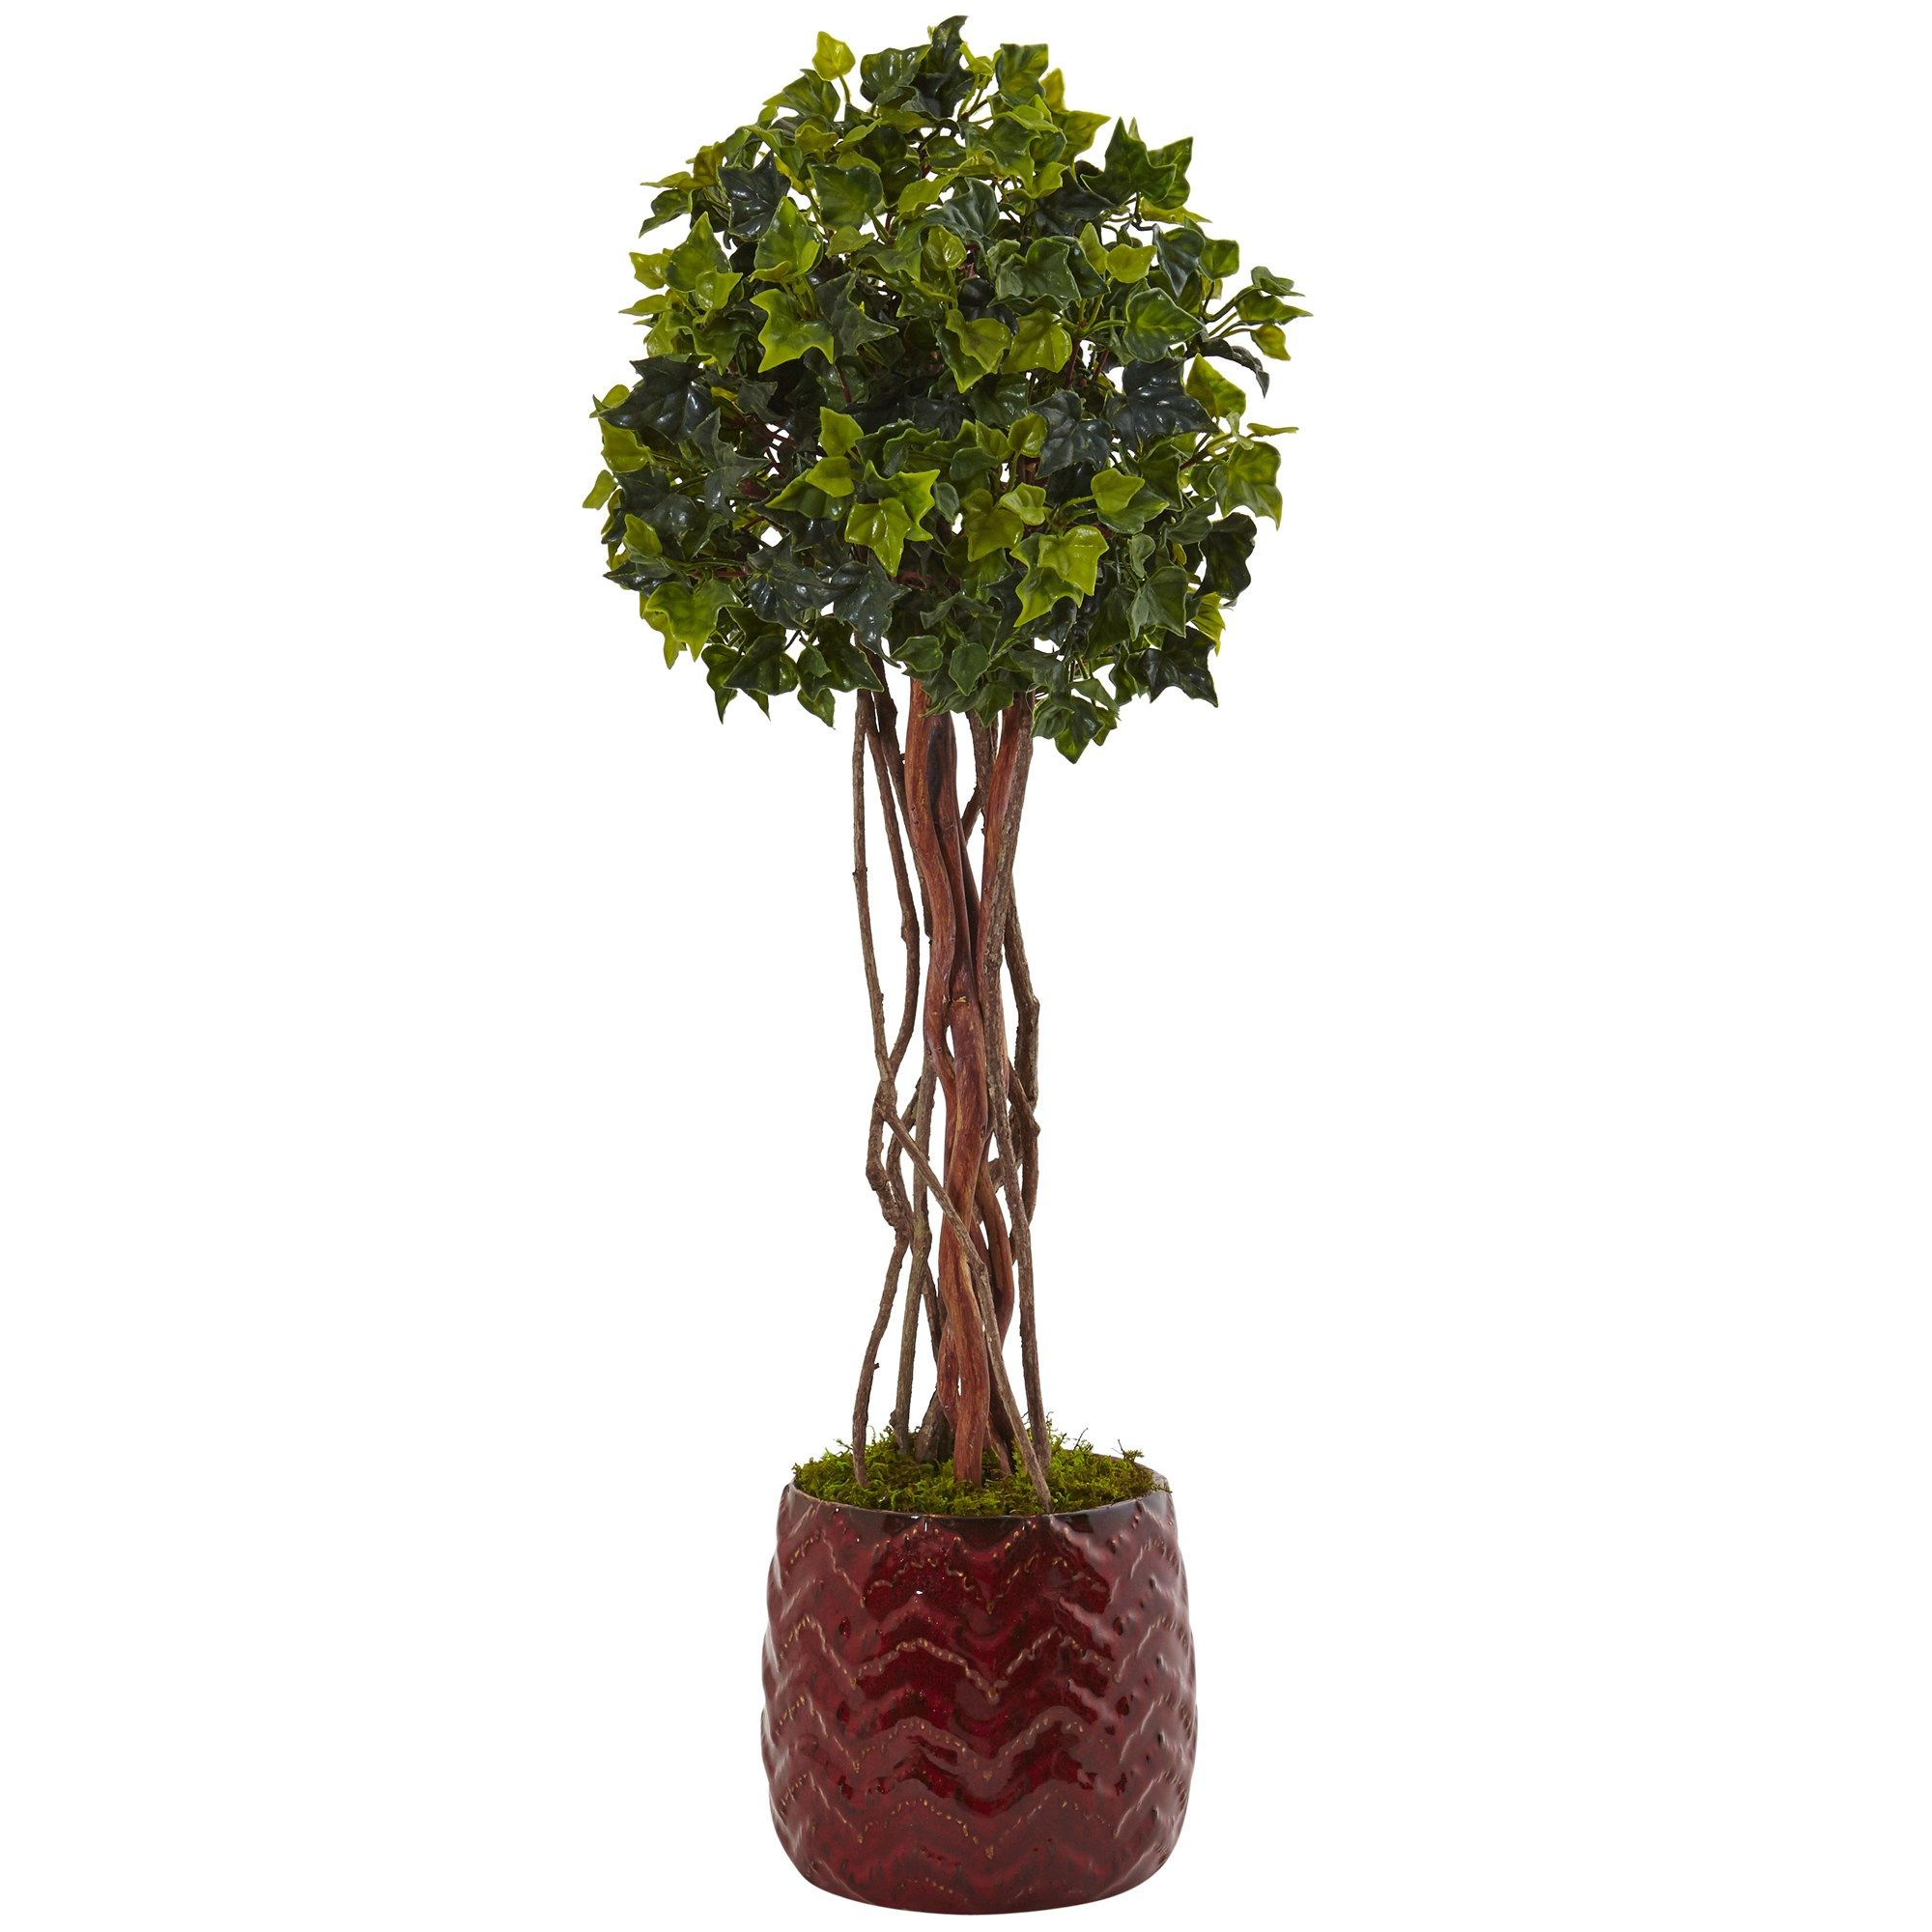 Outdoor Topiary Trees With Lights 25 h english ivy tree in red planter uv resistant indooroutdoor 25 h english ivy tree in red planter uv resistant indooroutdoor workwithnaturefo